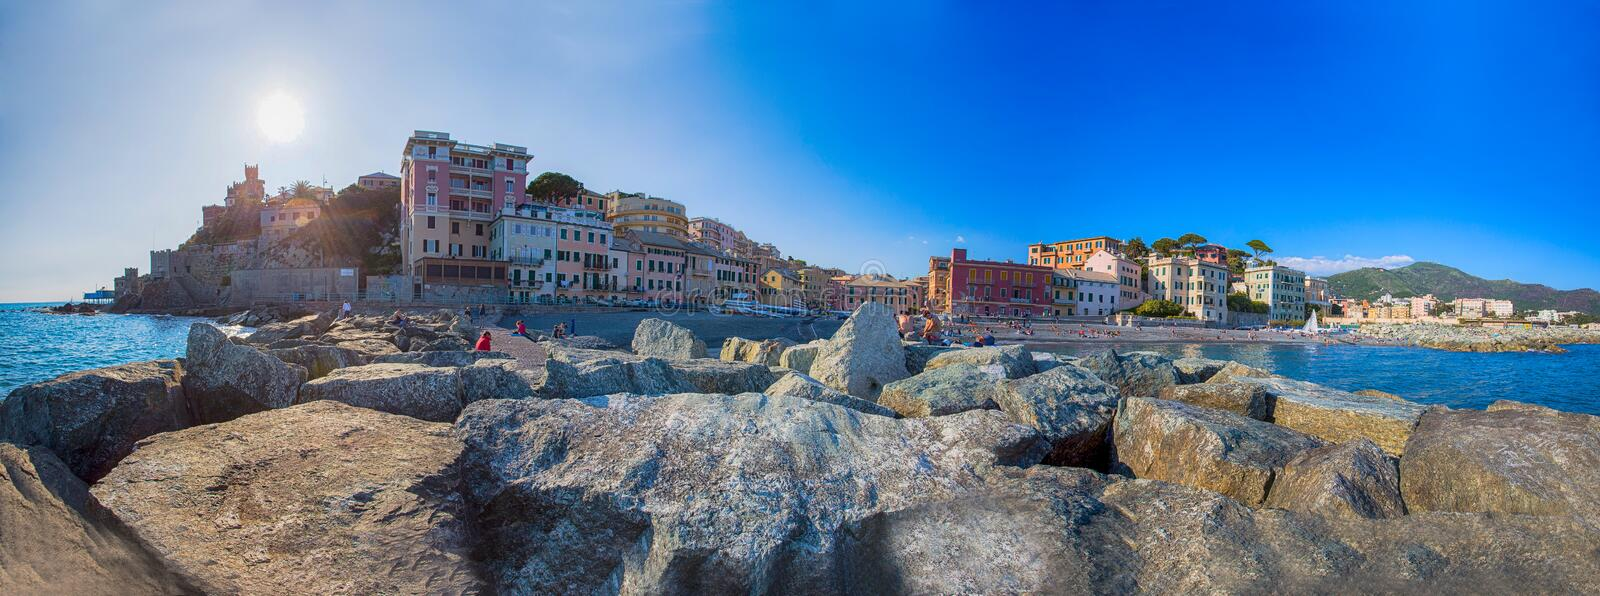 Panoramic view of Vernazzola Beach, colorful houses village in Genoa, Italy stock photo